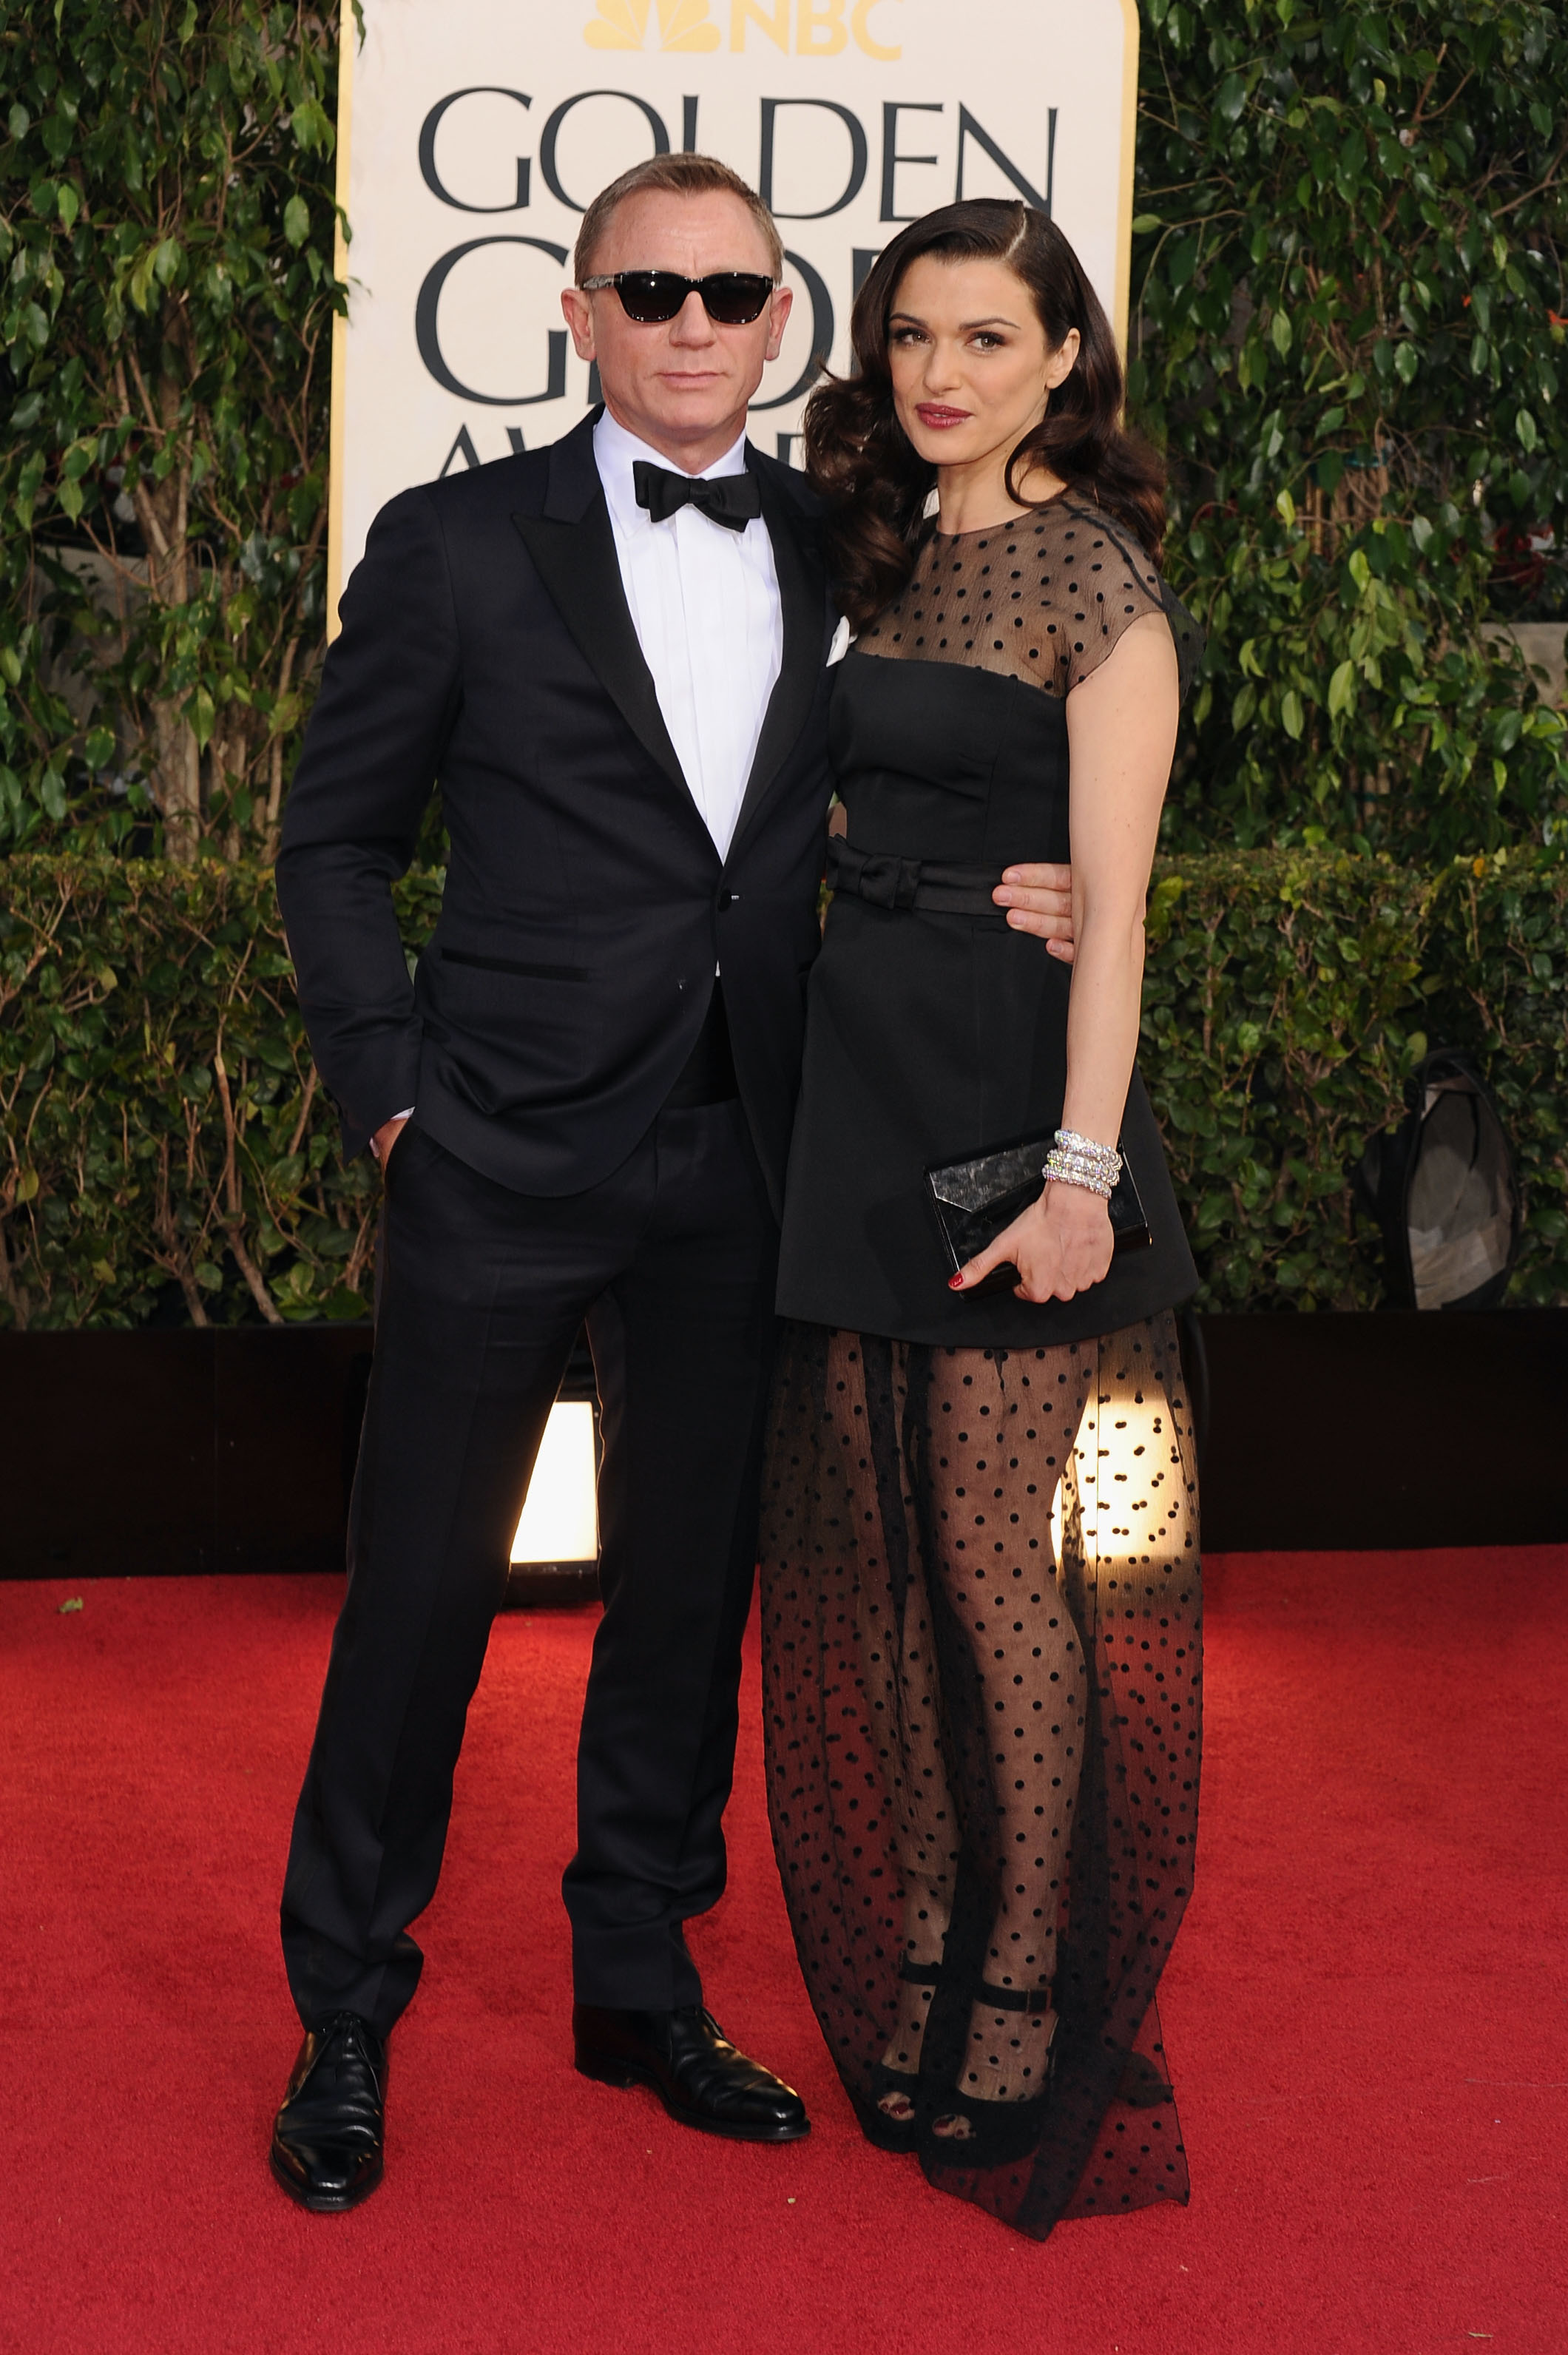 Daniel Craig and Rachel Weisz made one seriously hot couple as they posed together on the Golden Globes red carpet.